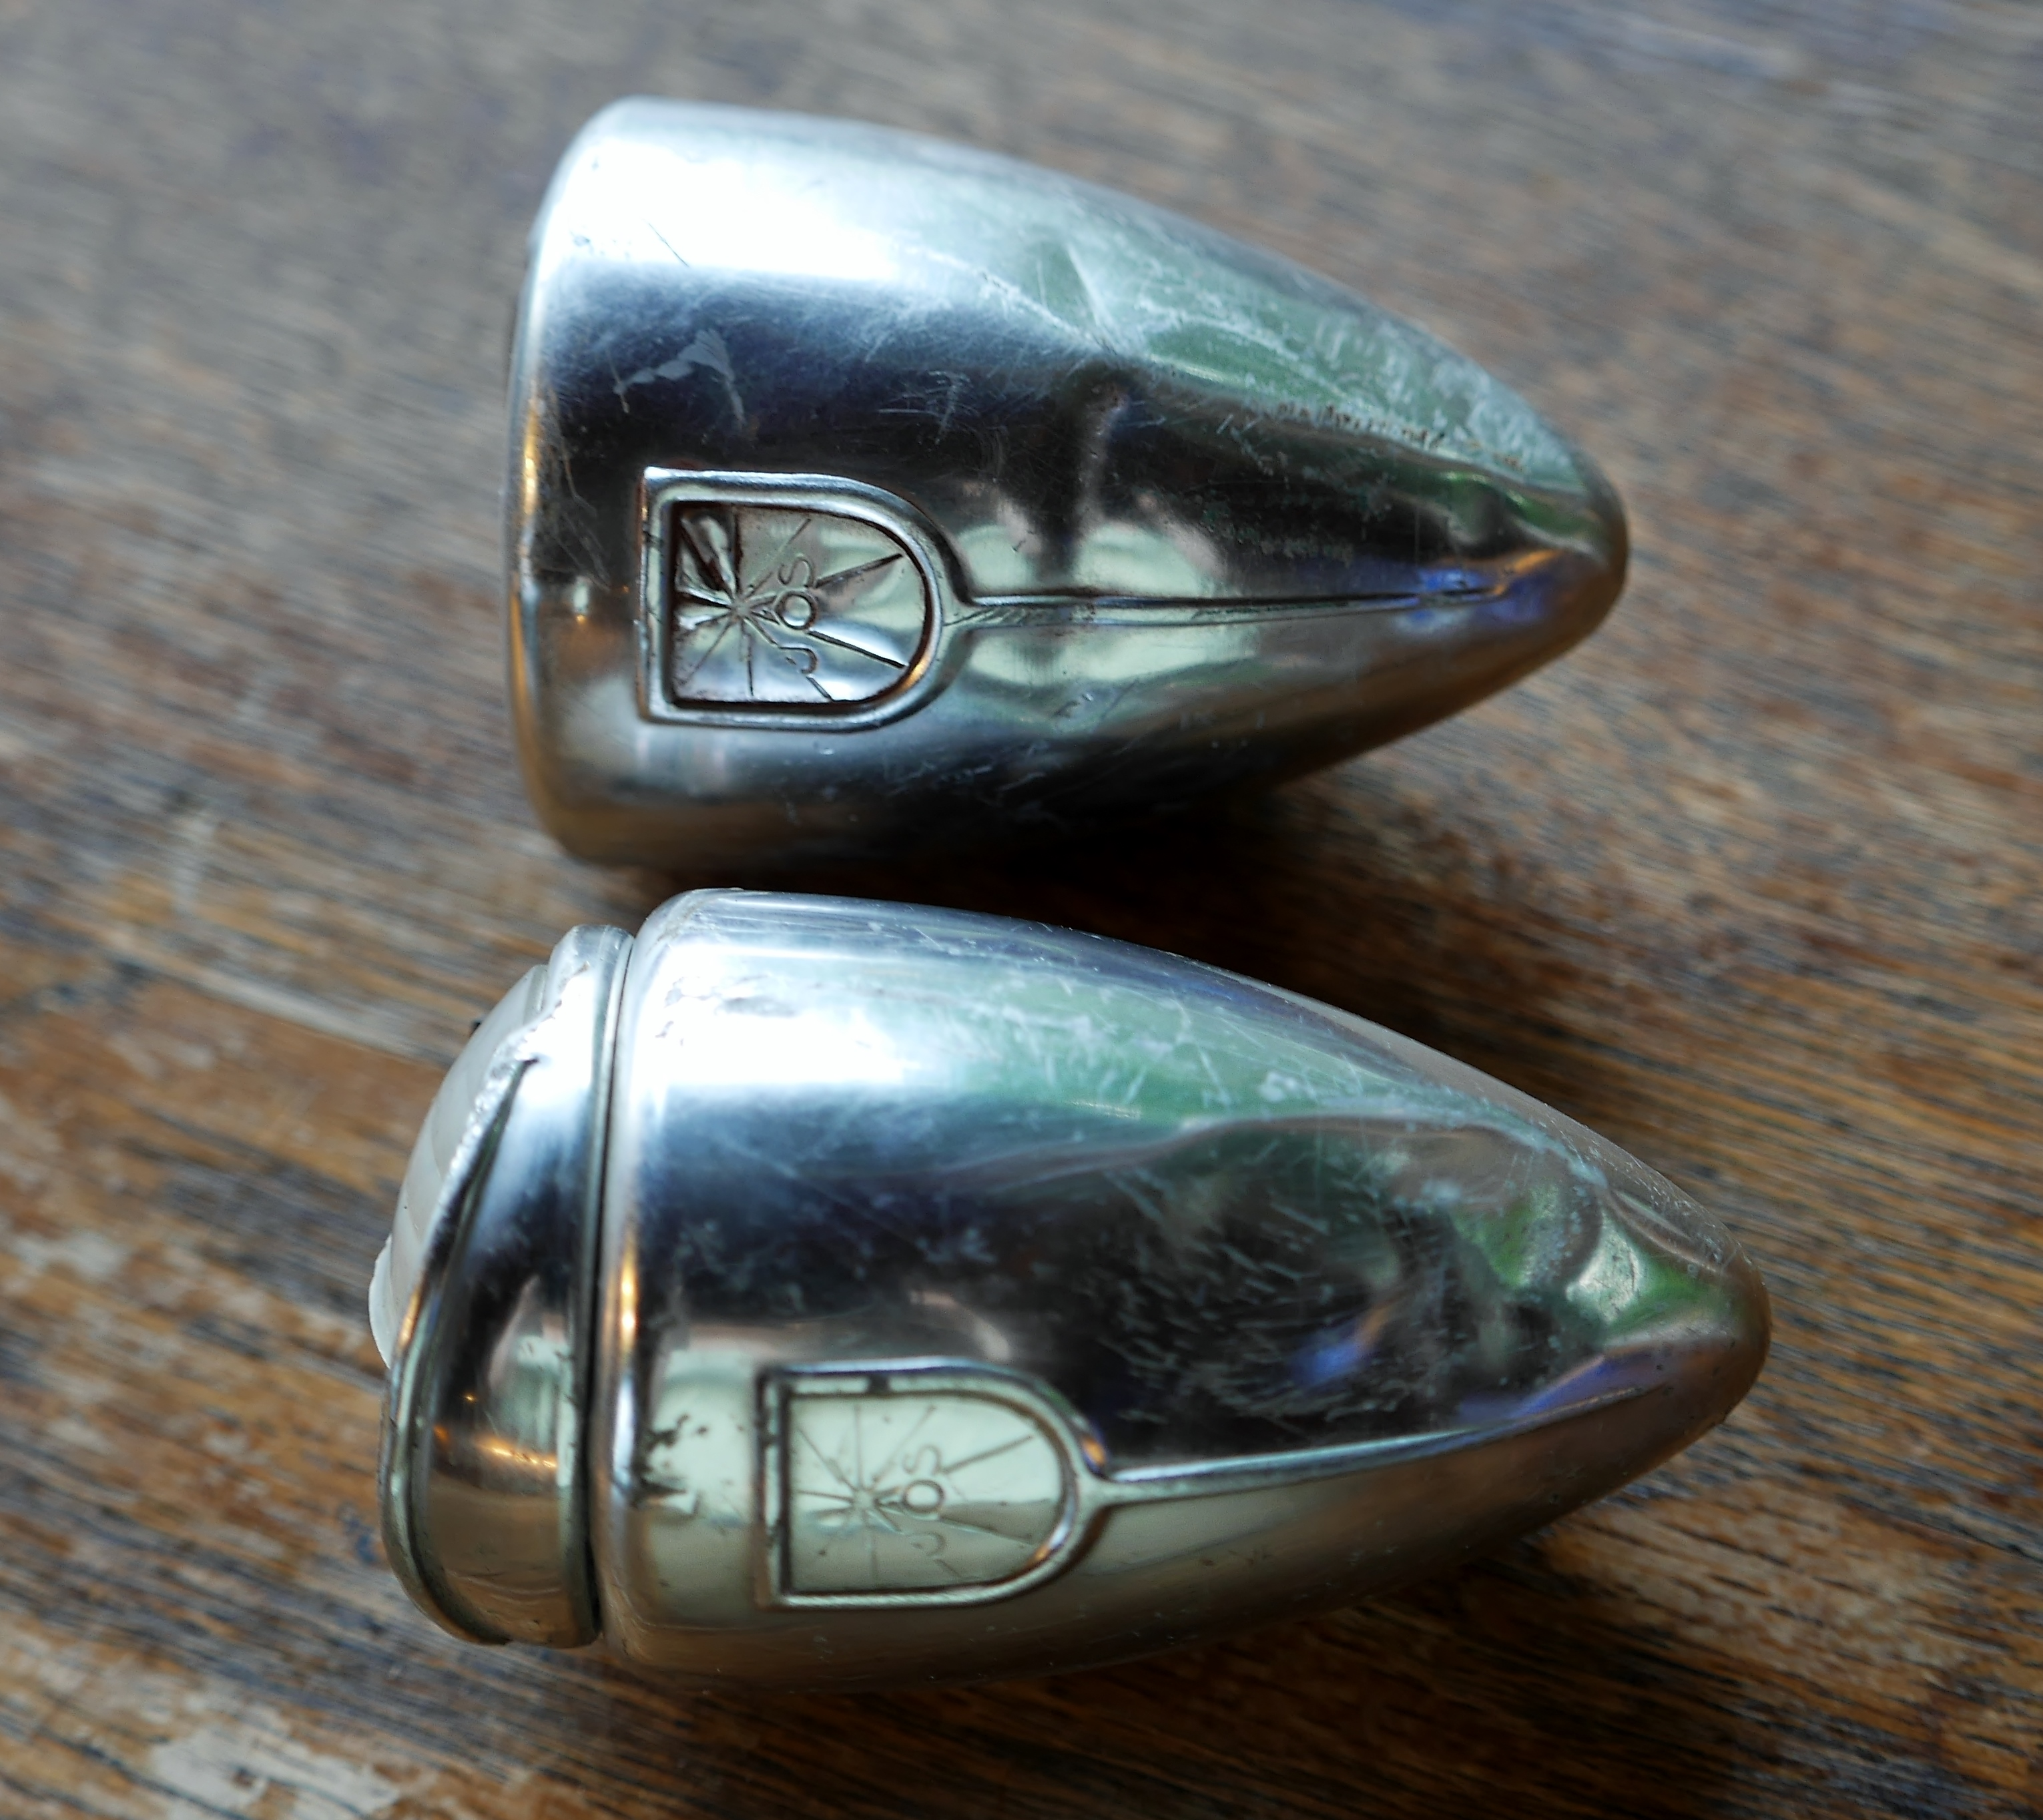 JOS Vintage Head and Tail Lamps | Restoring Vintage Bicycles from